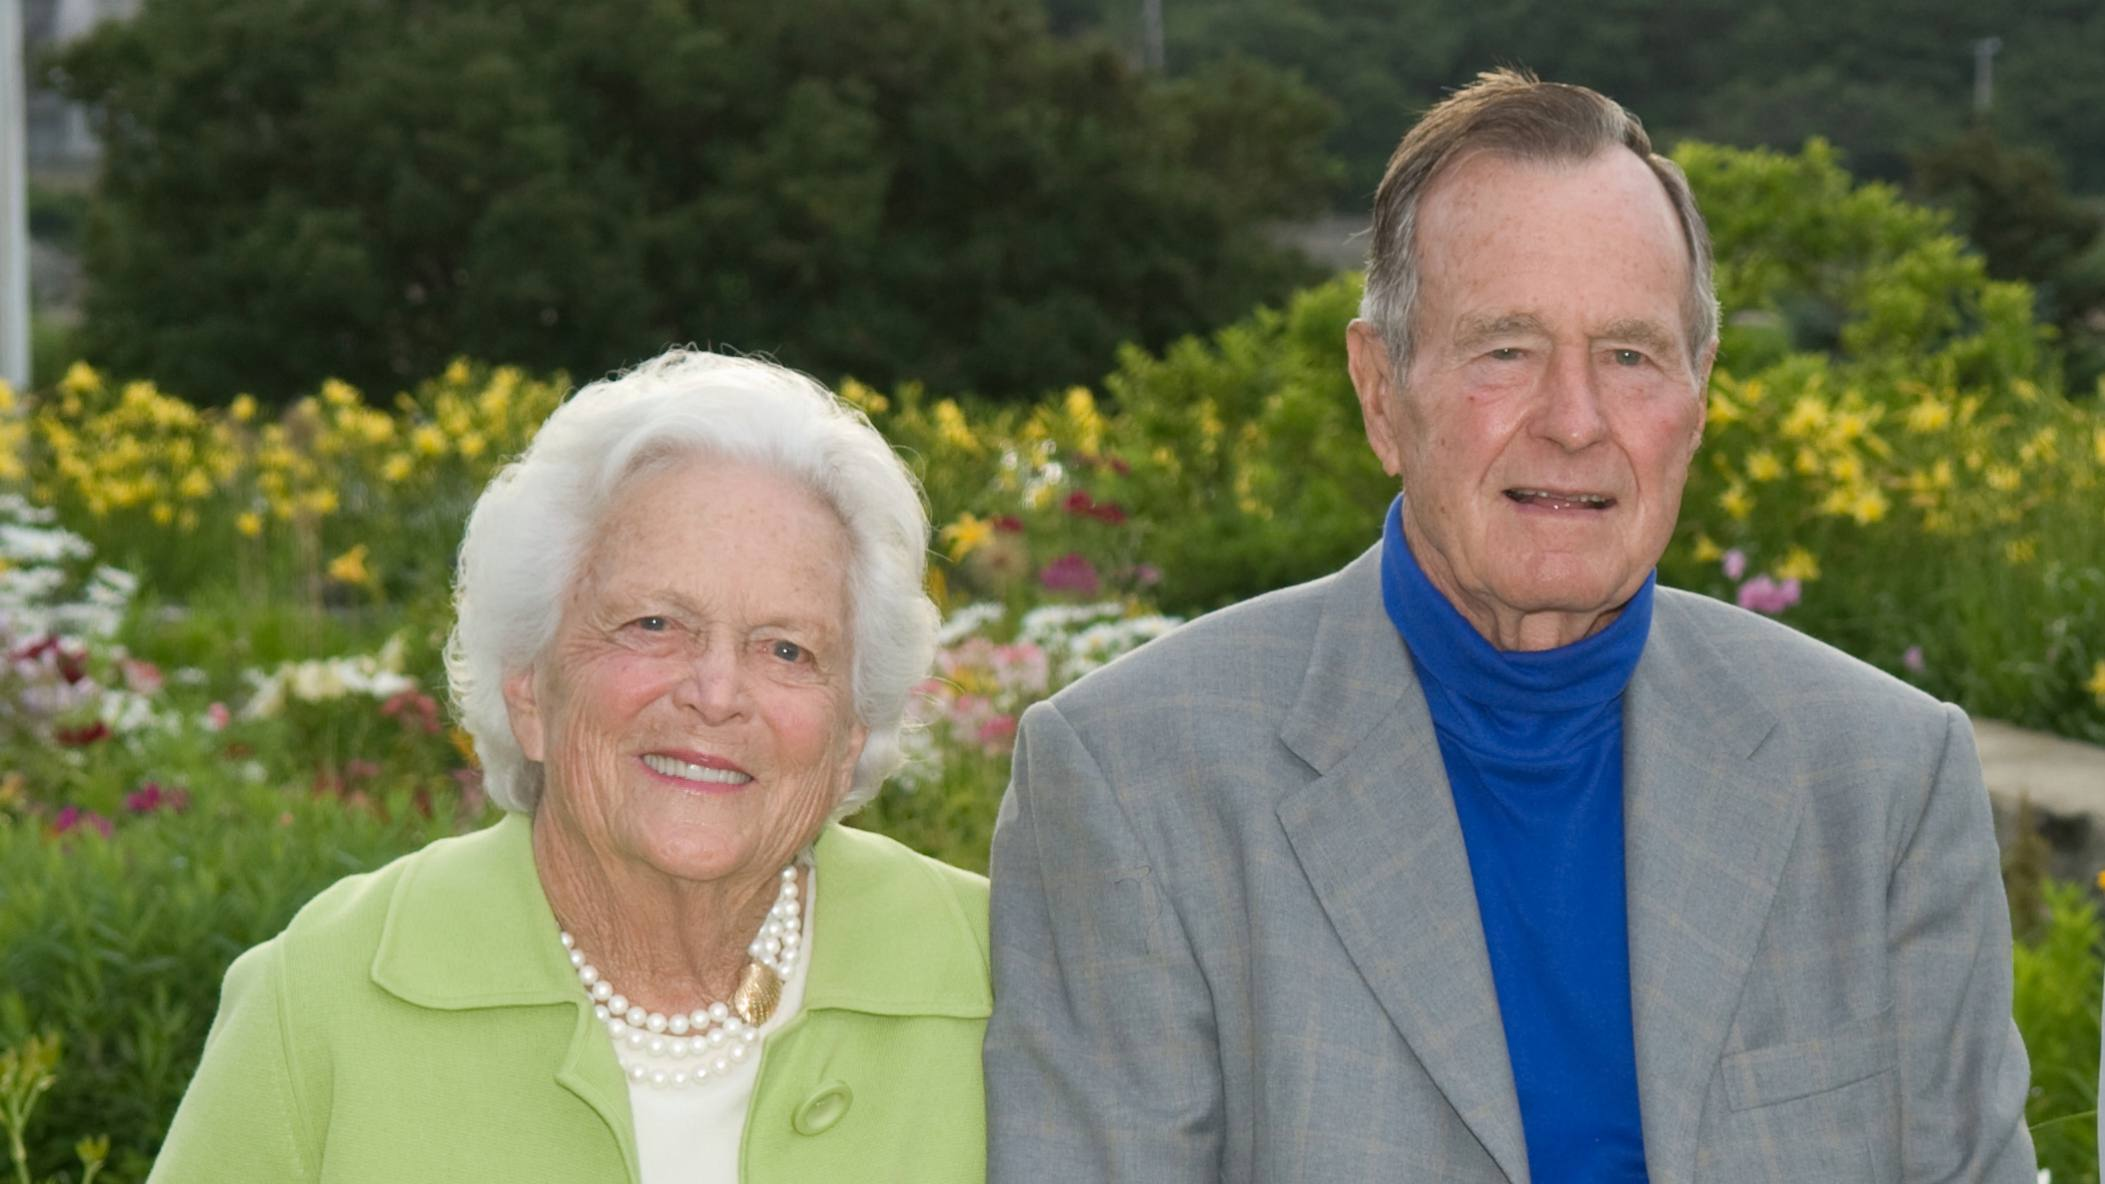 former President George Bush with his wife Barbara Bush sitting outside in a garden